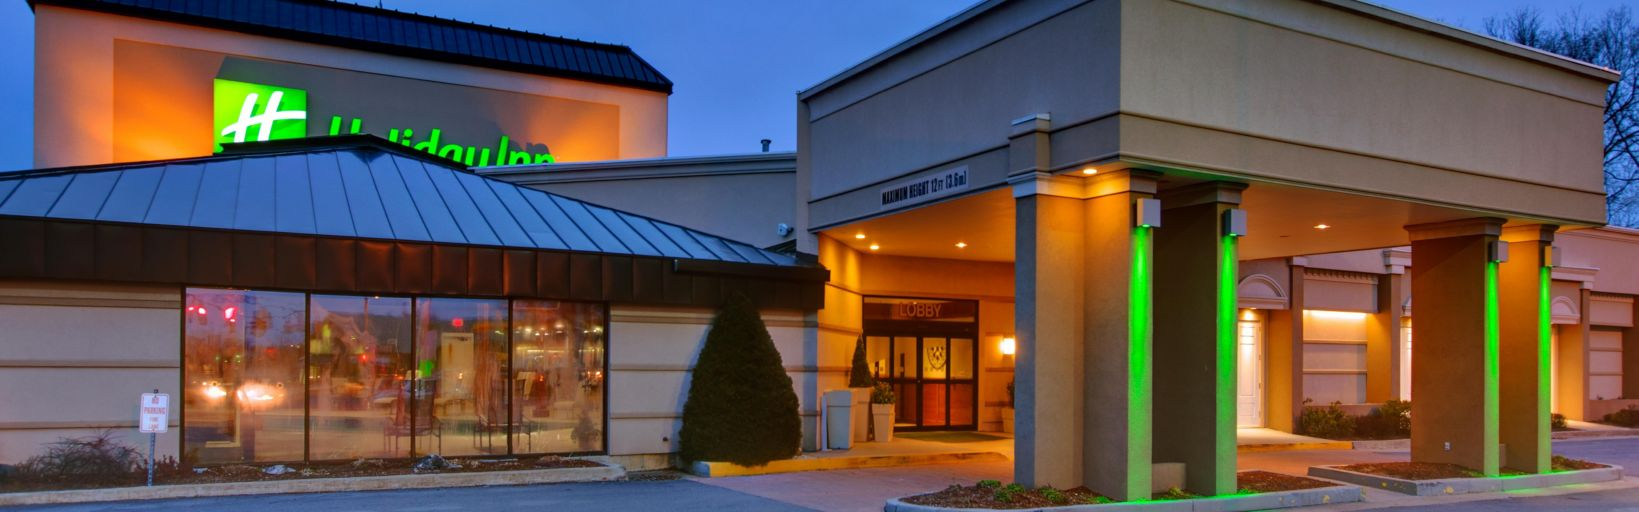 Front Desk Welcoming Well Lite Exterior At The Holiday Inn Welcome To Burlington Vermont